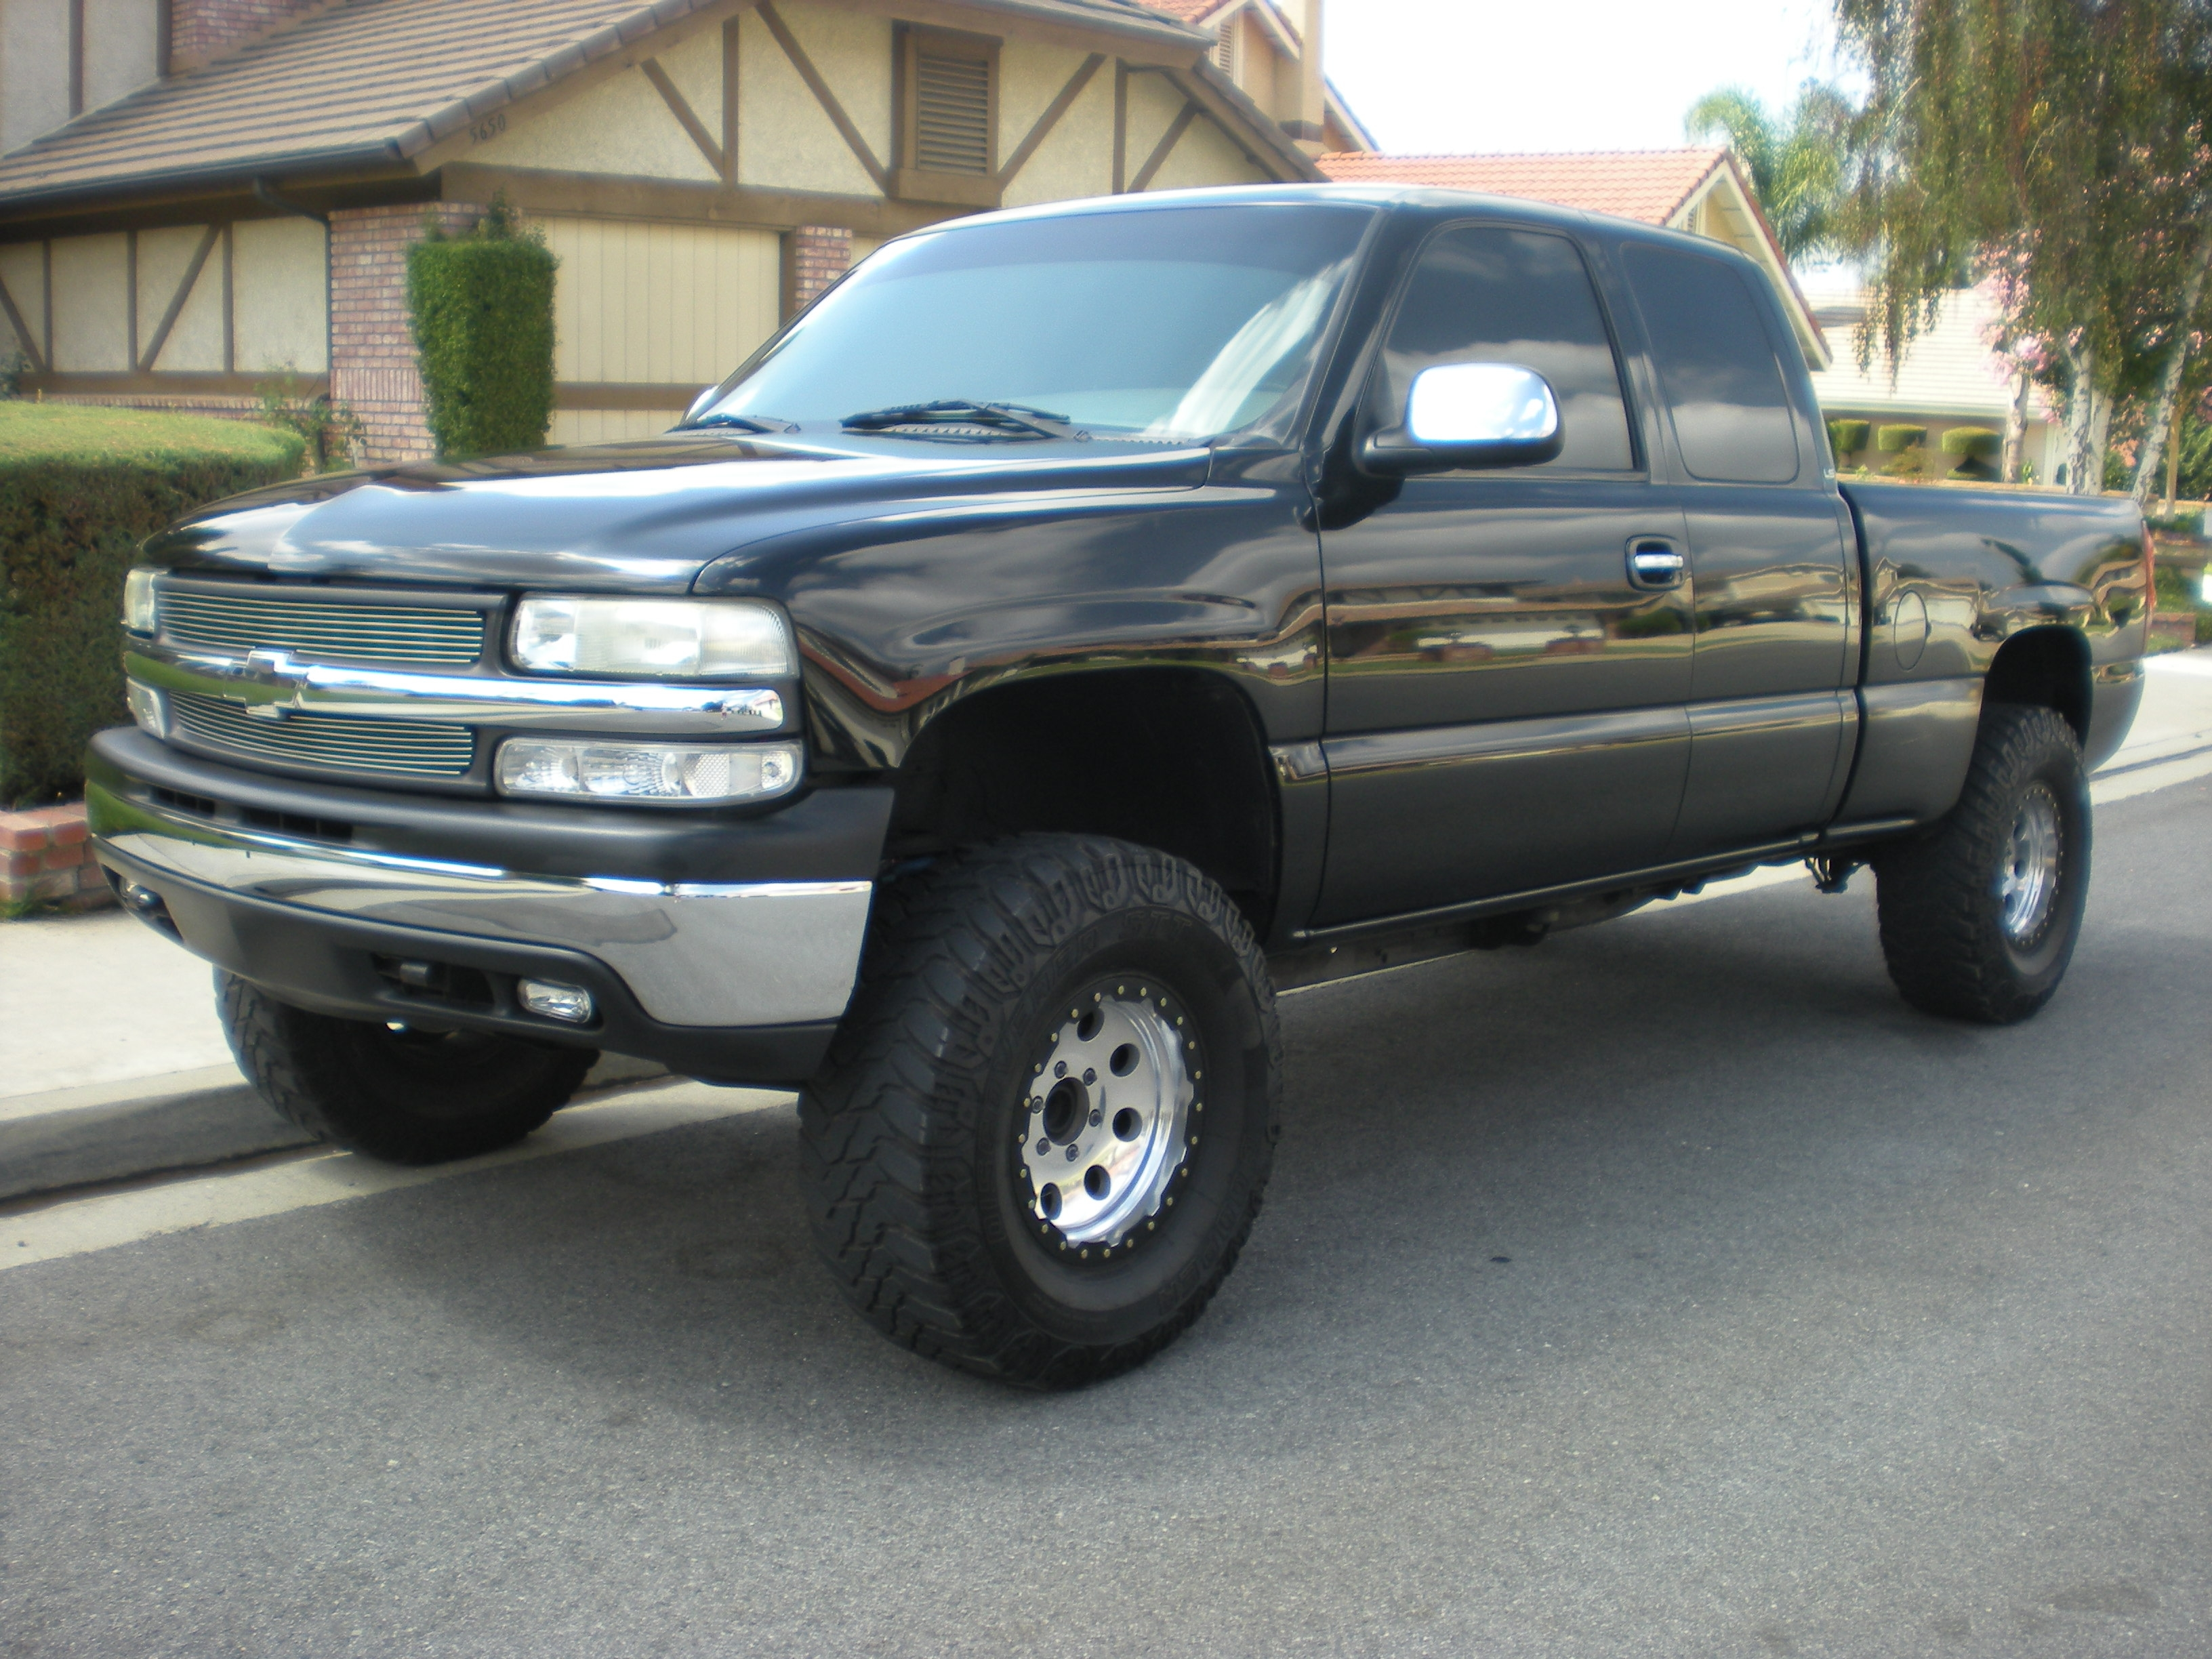 chevykid355 2000 chevrolet silverado 1500 extended cabshort bed specs photos modification info. Black Bedroom Furniture Sets. Home Design Ideas